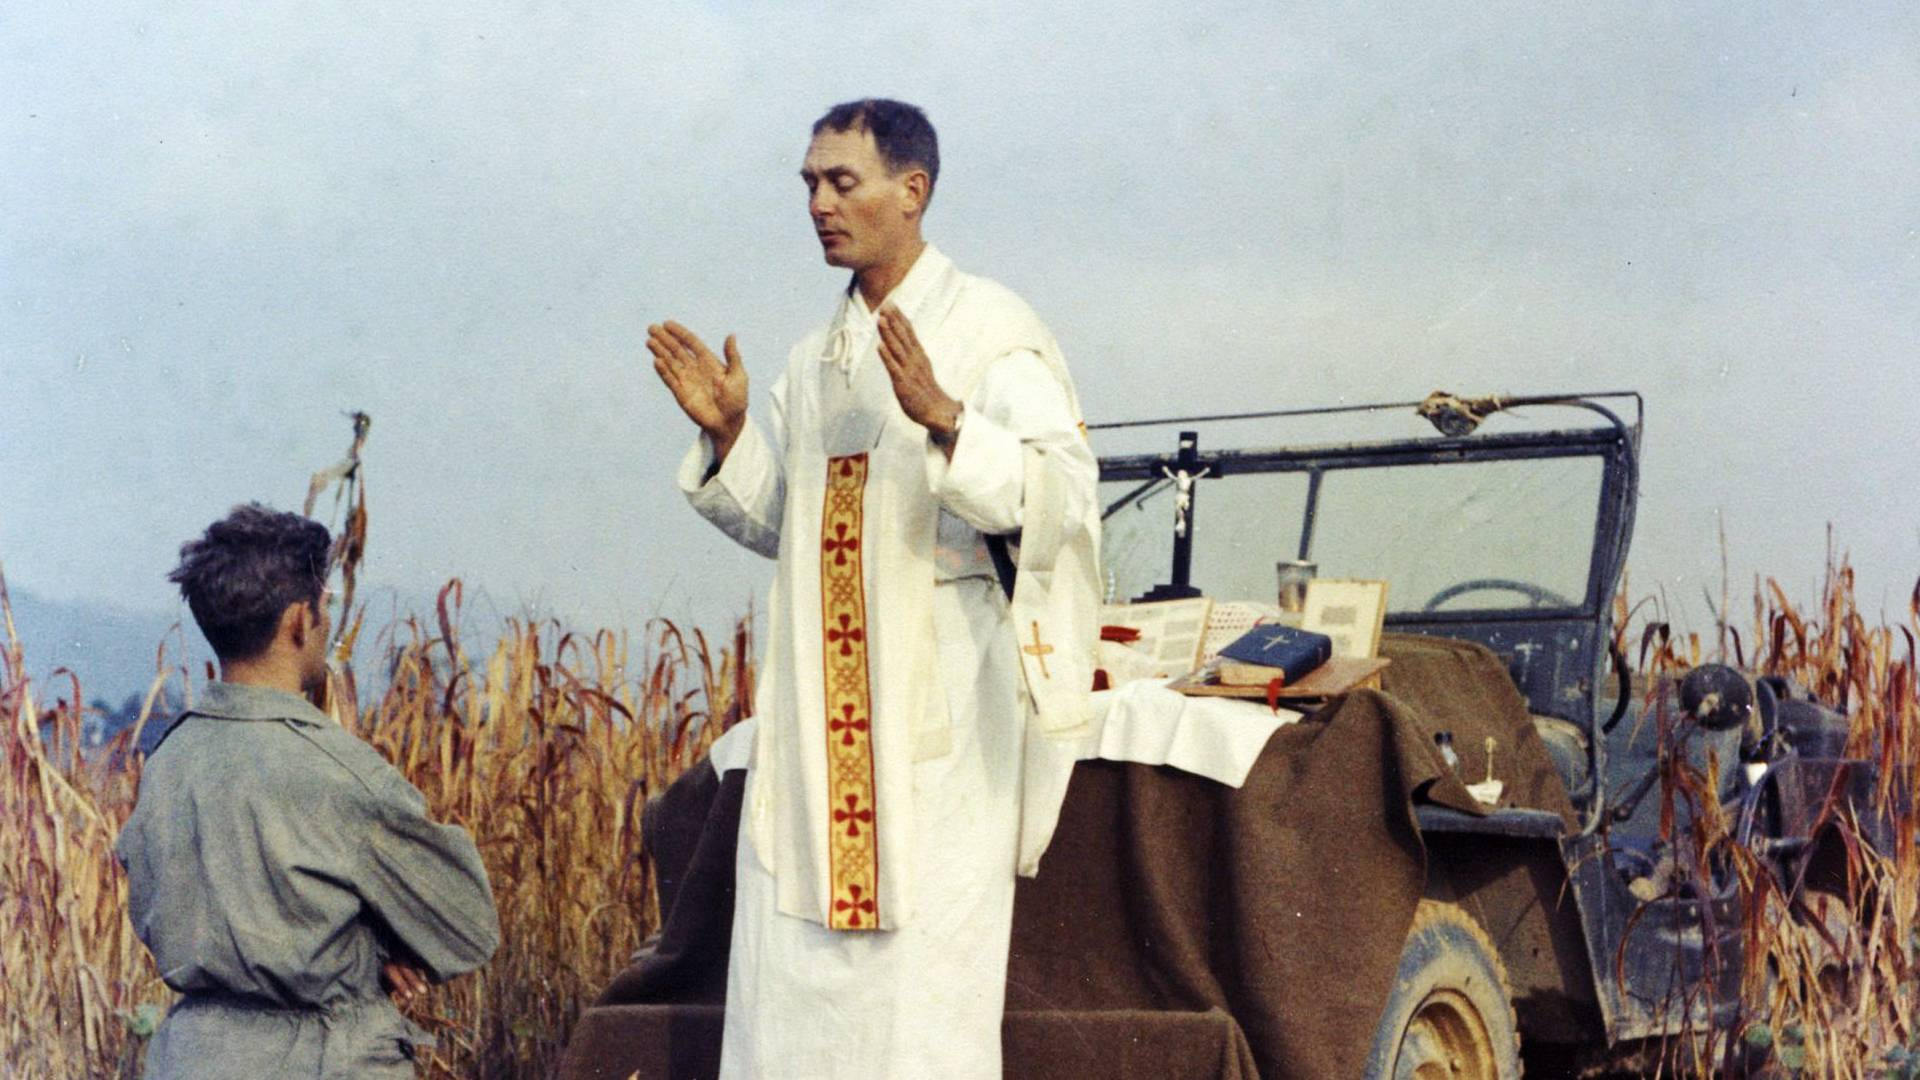 """""""Tell my bishop I died a happy death"""": Fr. Emil Kapaun's enduring example of hope"""